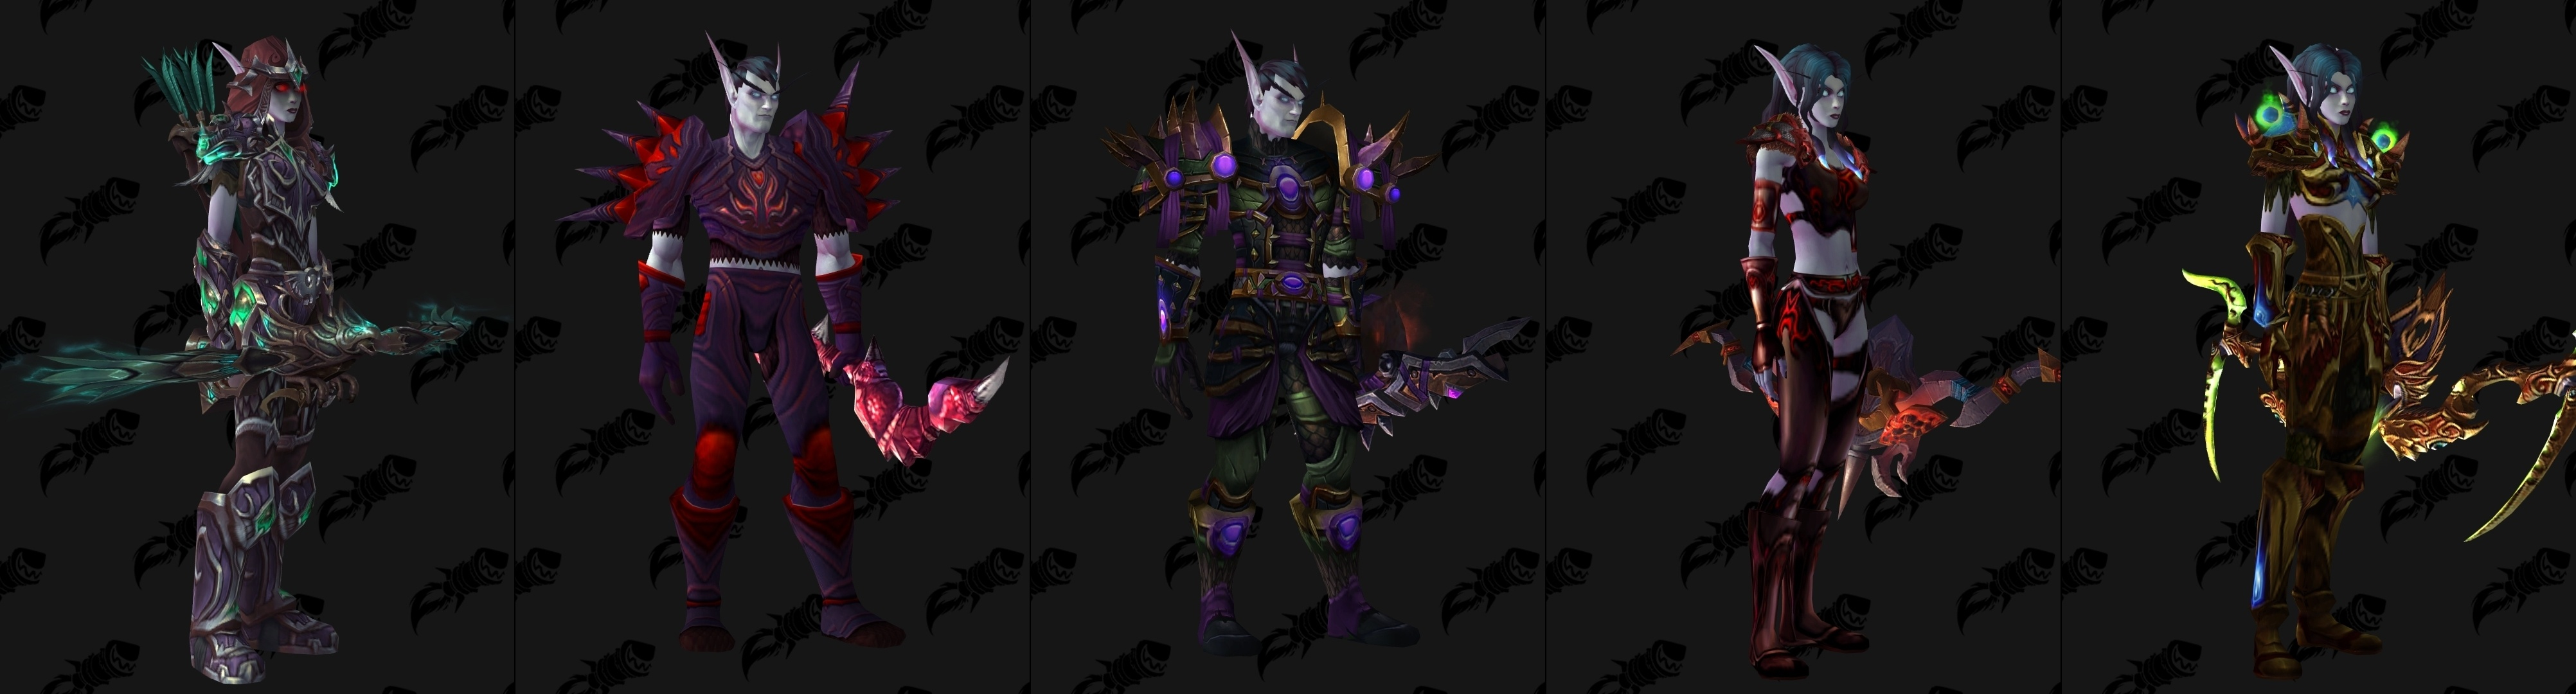 Void Elf Allied Race Transmog Suggestions Wowhead News With patch 8.1, heritage sets were added for dwarves and blood elves. void elf allied race transmog